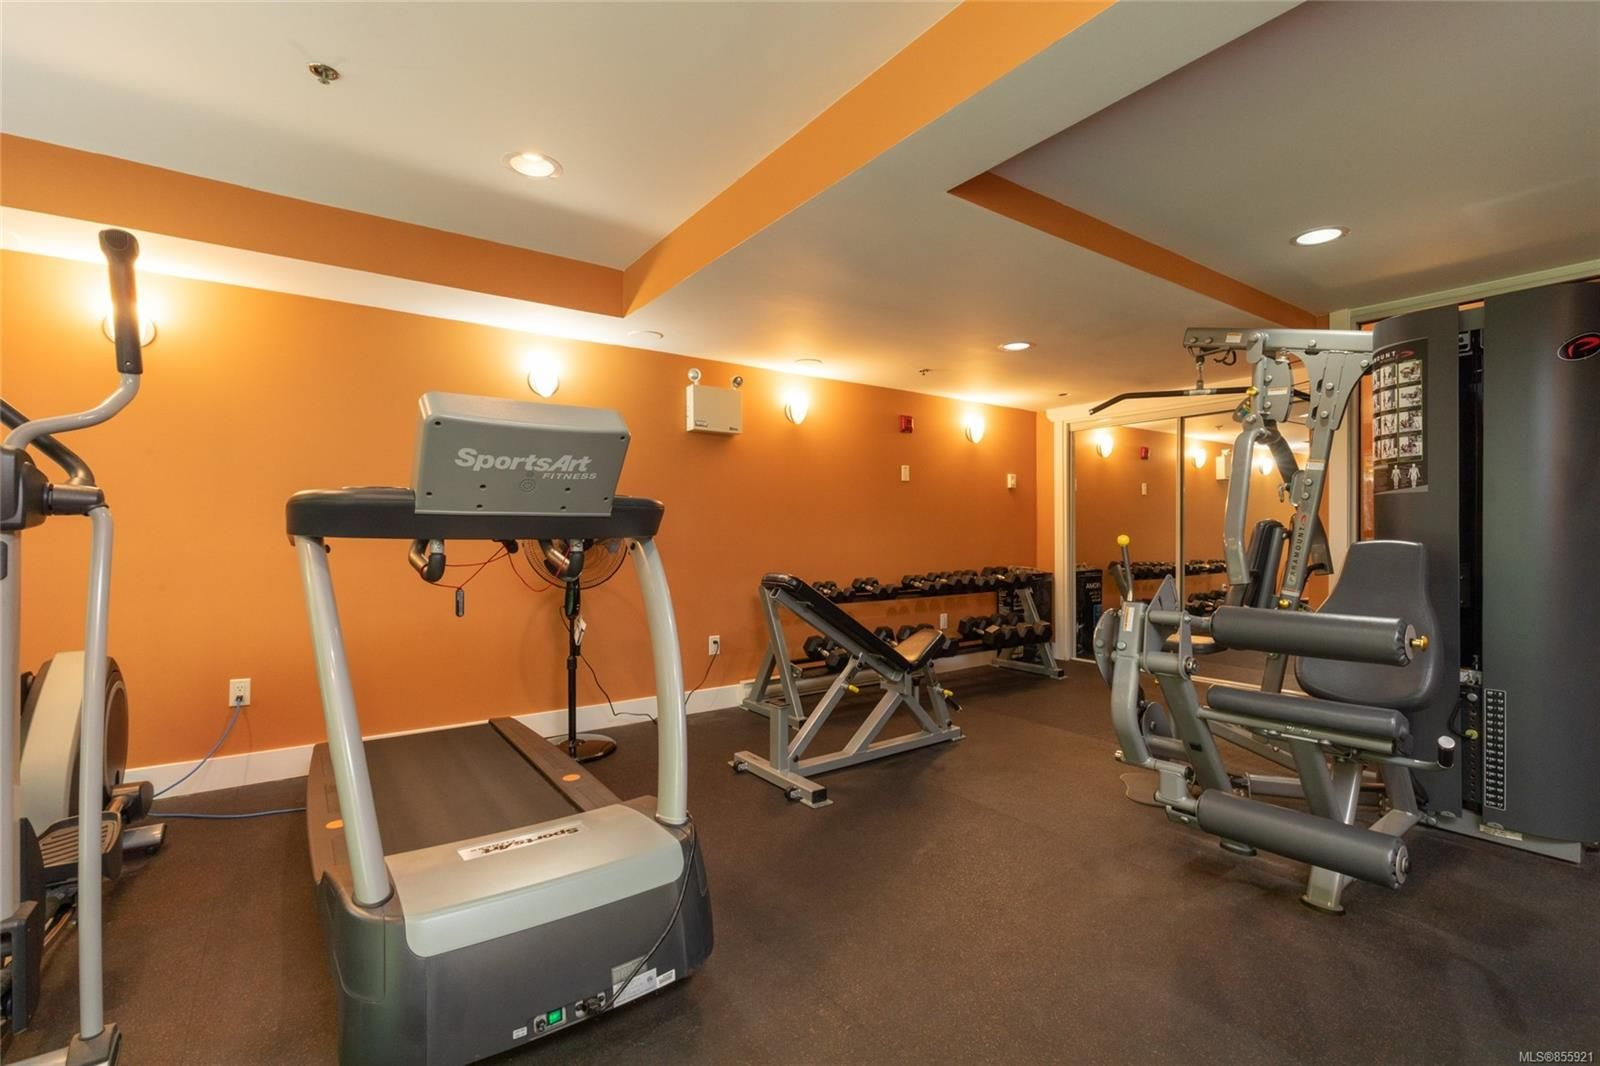 Photo 17: Photos: 206 1244 4TH Ave in : Du Ladysmith Row/Townhouse for sale (Duncan)  : MLS®# 855921